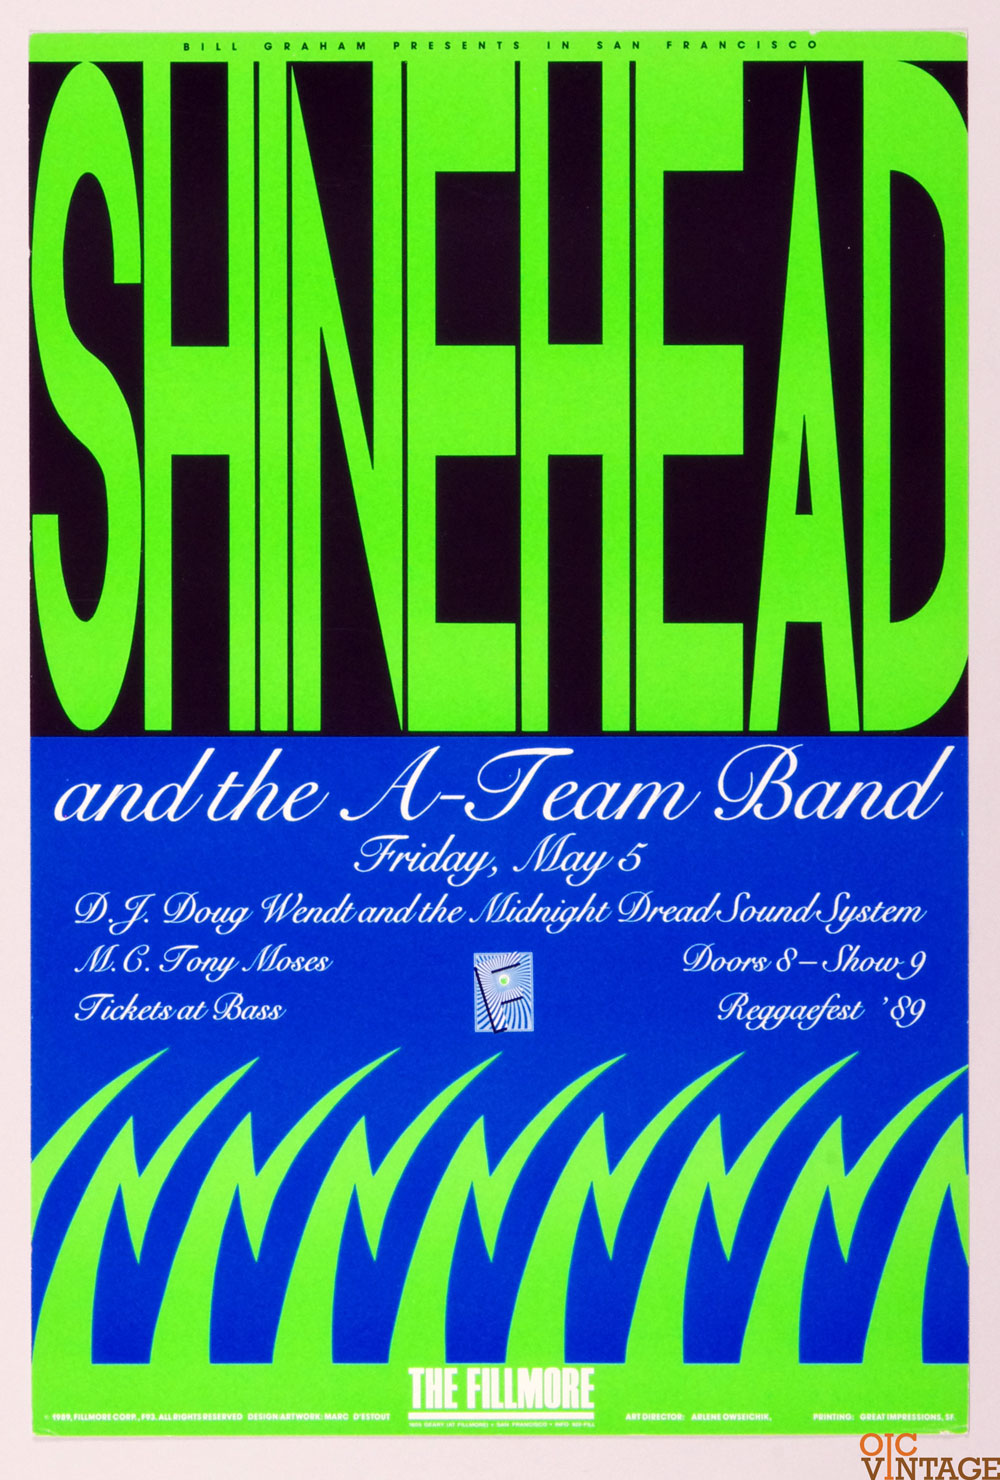 New Fillmore F093 Poster Shinehead and the A-Team Band 1989 May 5